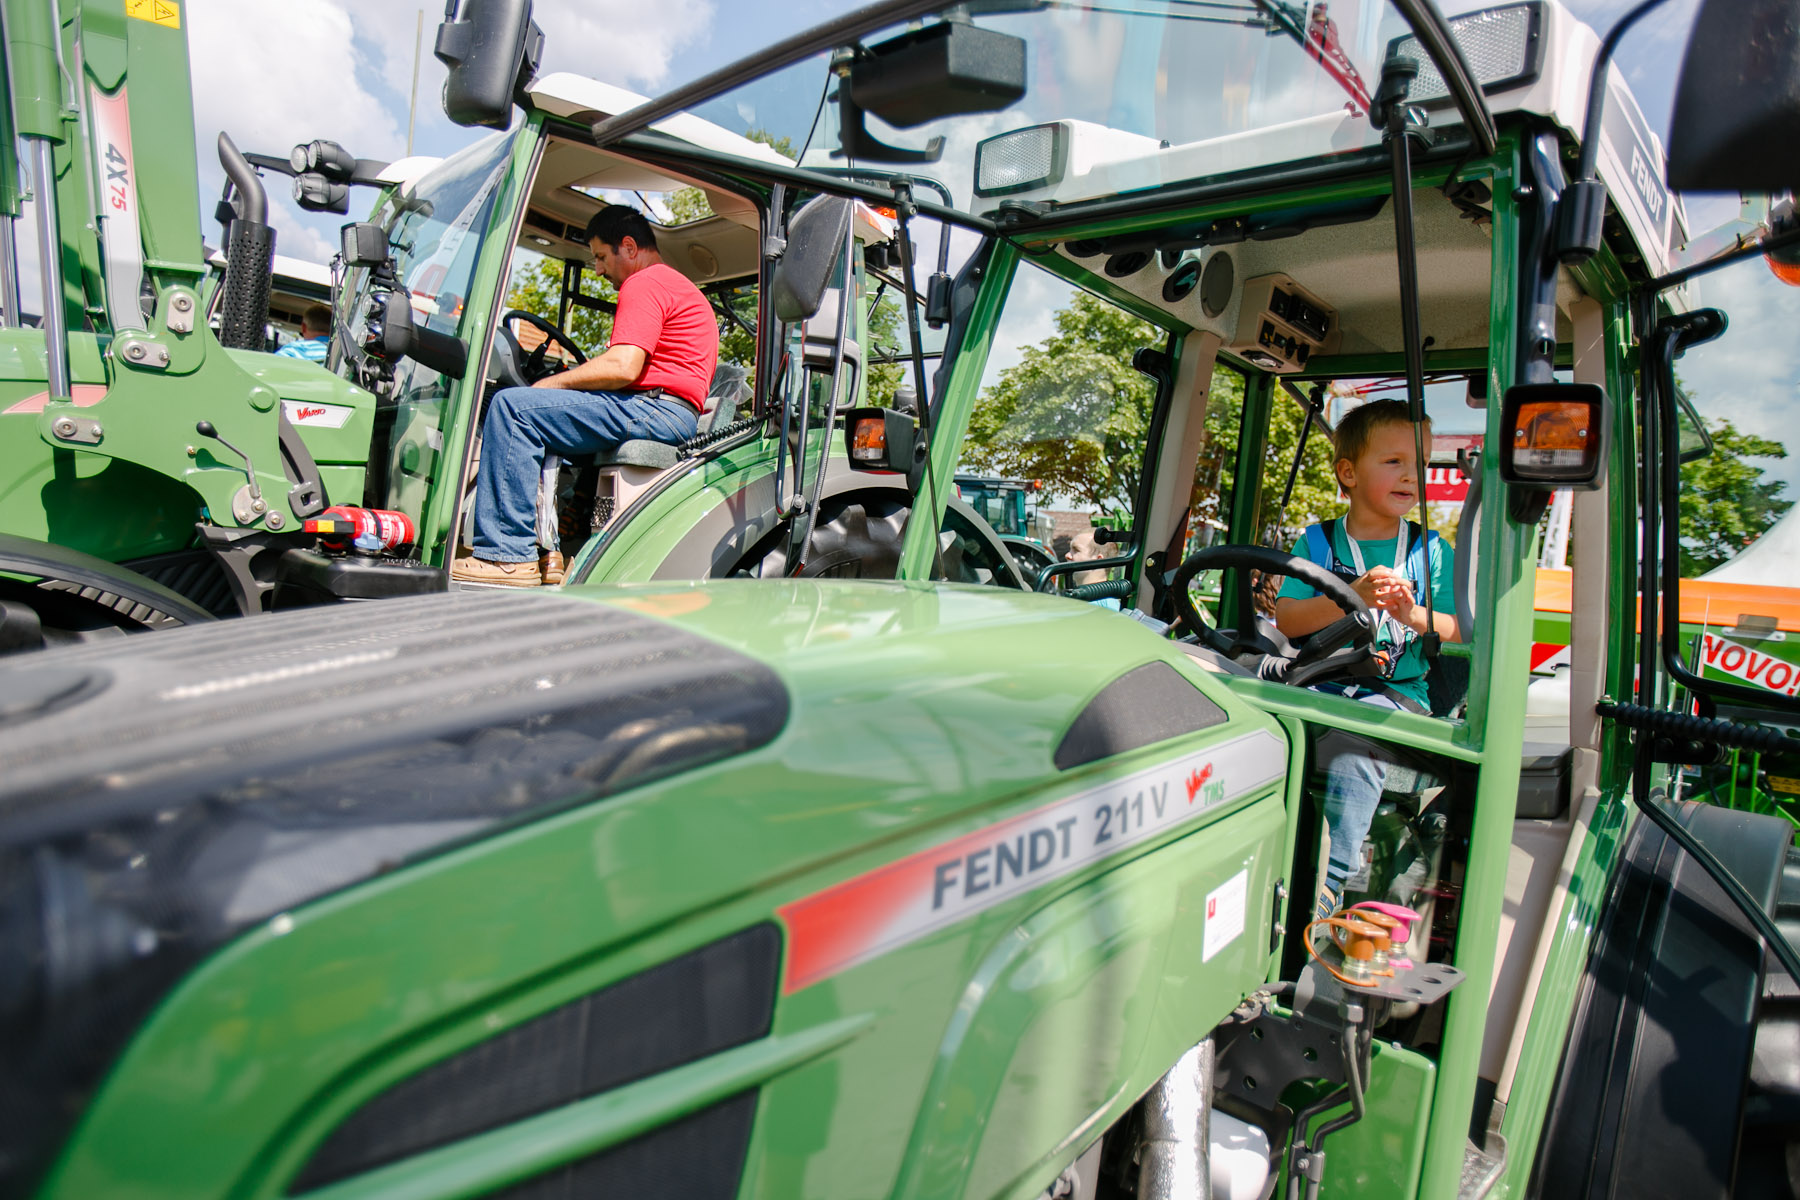 Visitors inspect the exhibited tractors at the 53rd agricultural fair Agra in Gornja Radgona, Slovenia, Aug. 22, 2015.